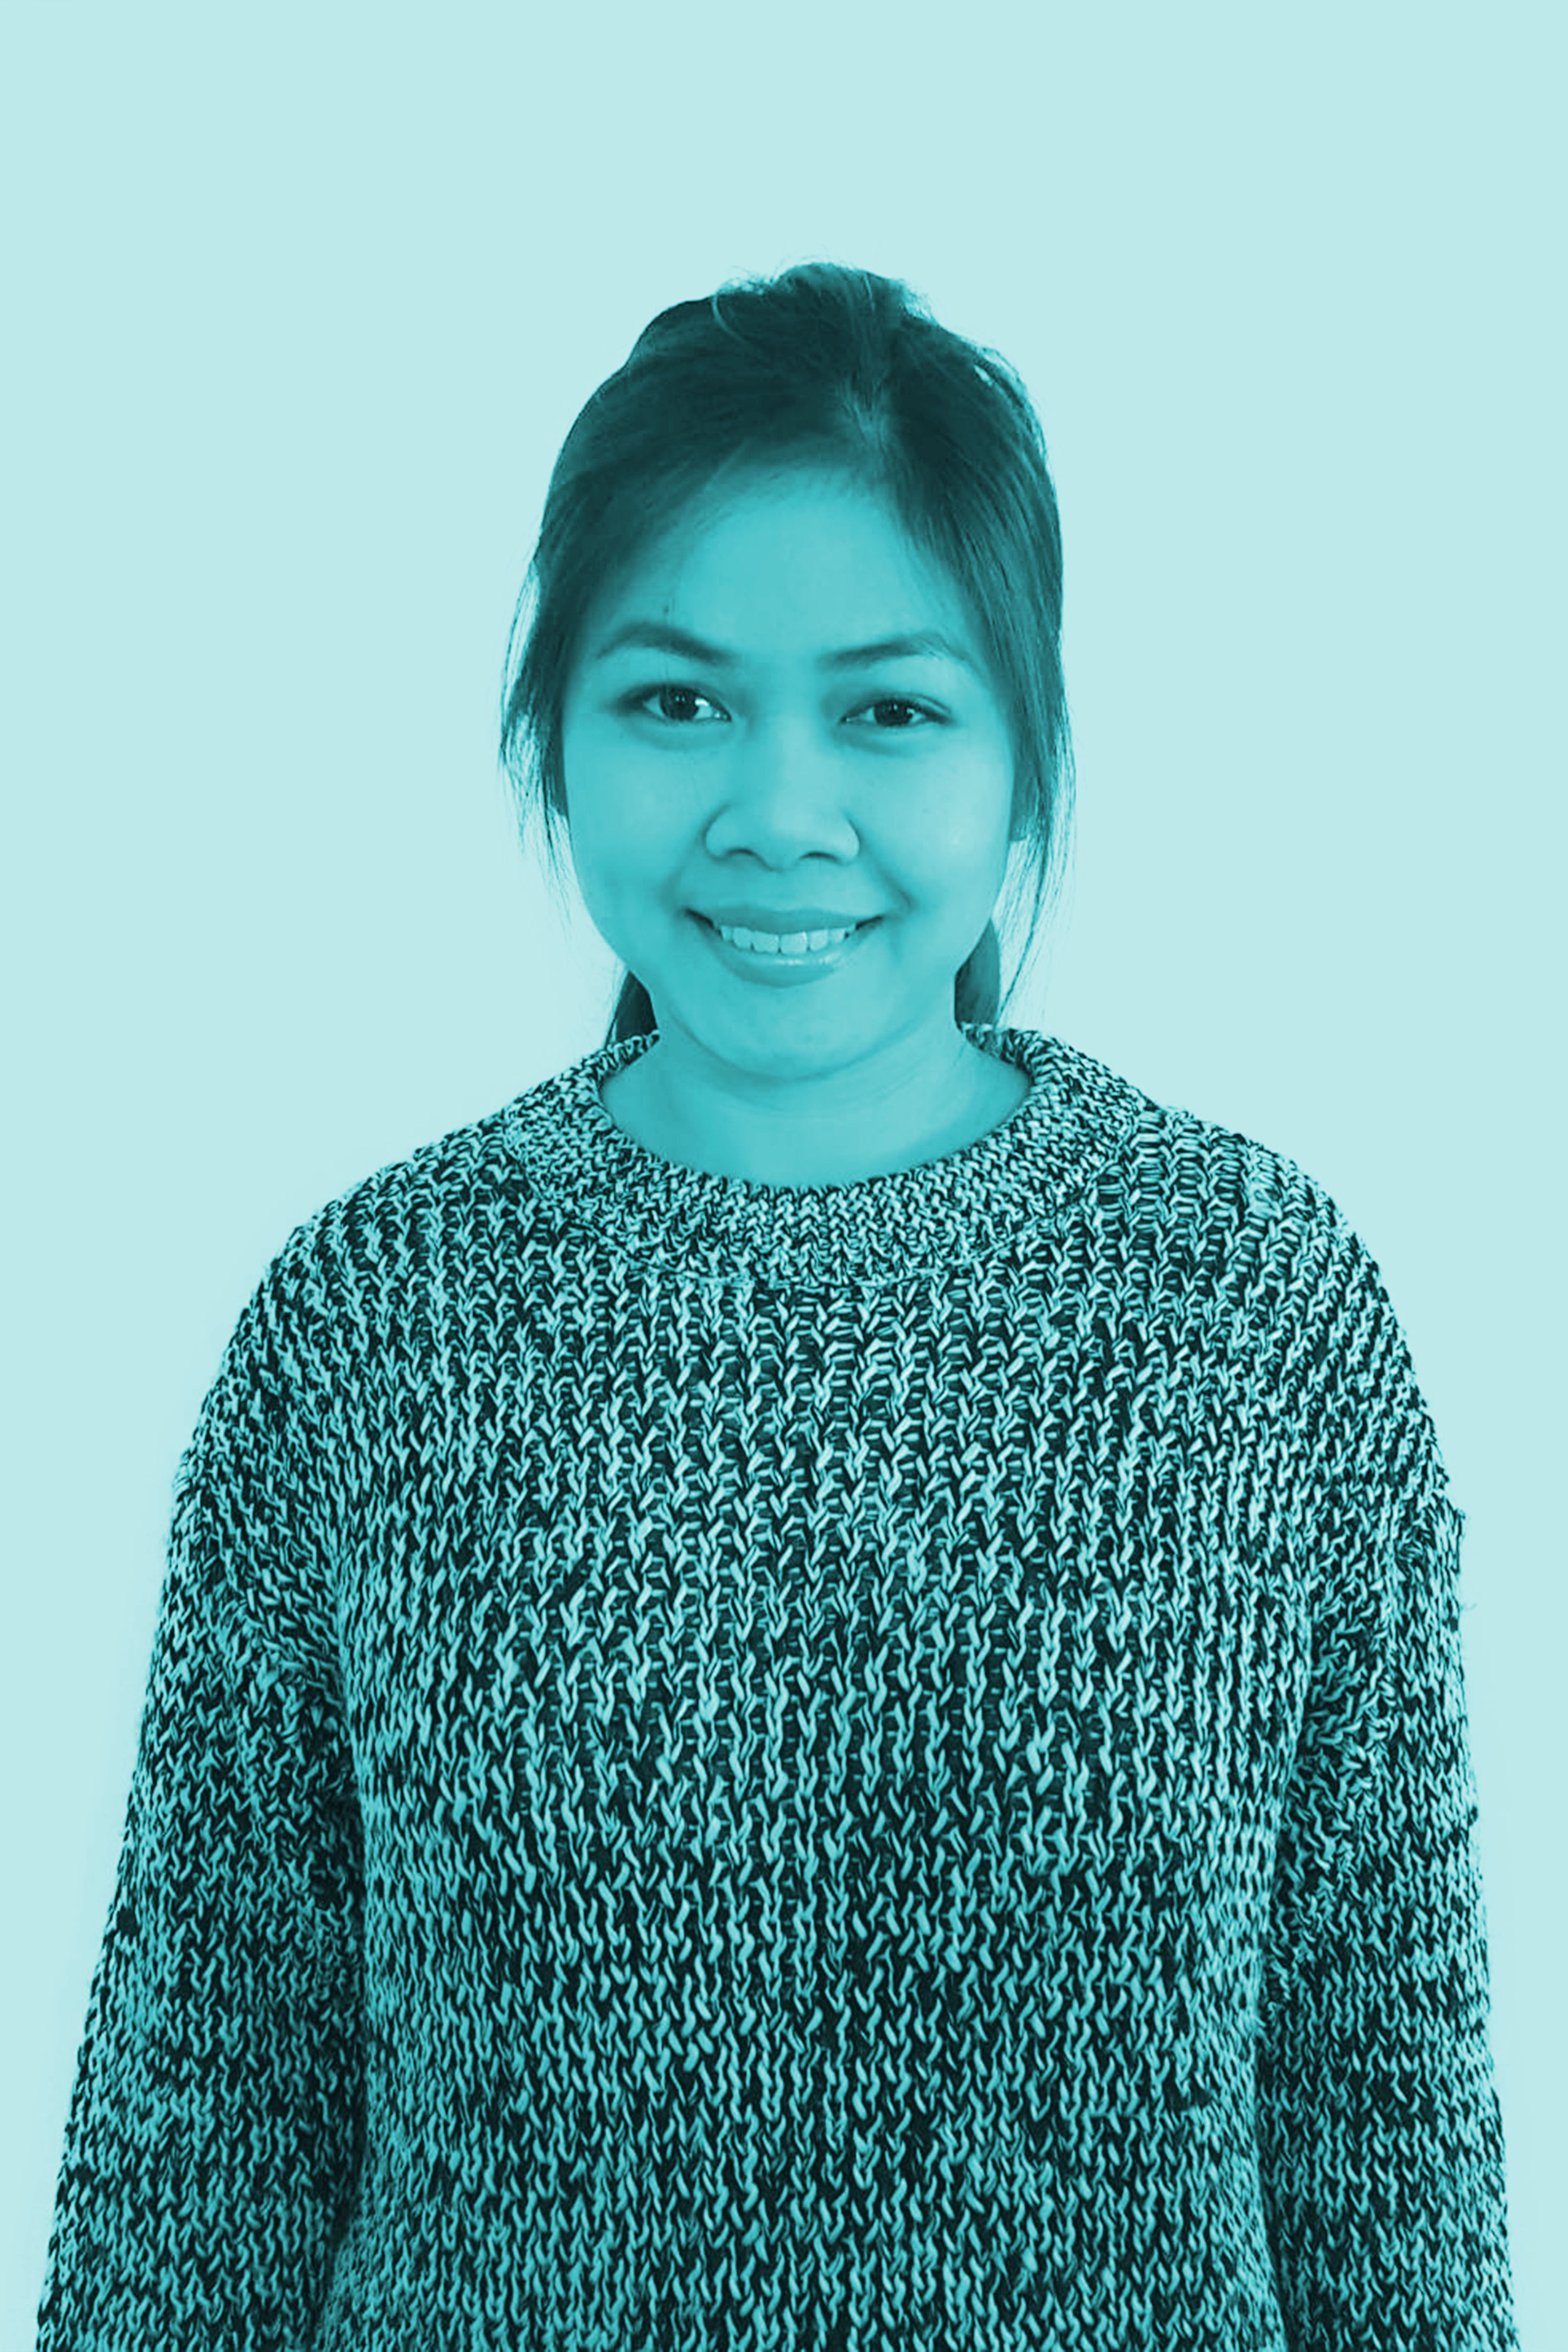 May - Having worked at an international school previously, not only has she taught Thai to many people, May also has years of experience teaching English to other Thais. May is now a permanent resident of Australia and continuing to pursue her love of teaching.